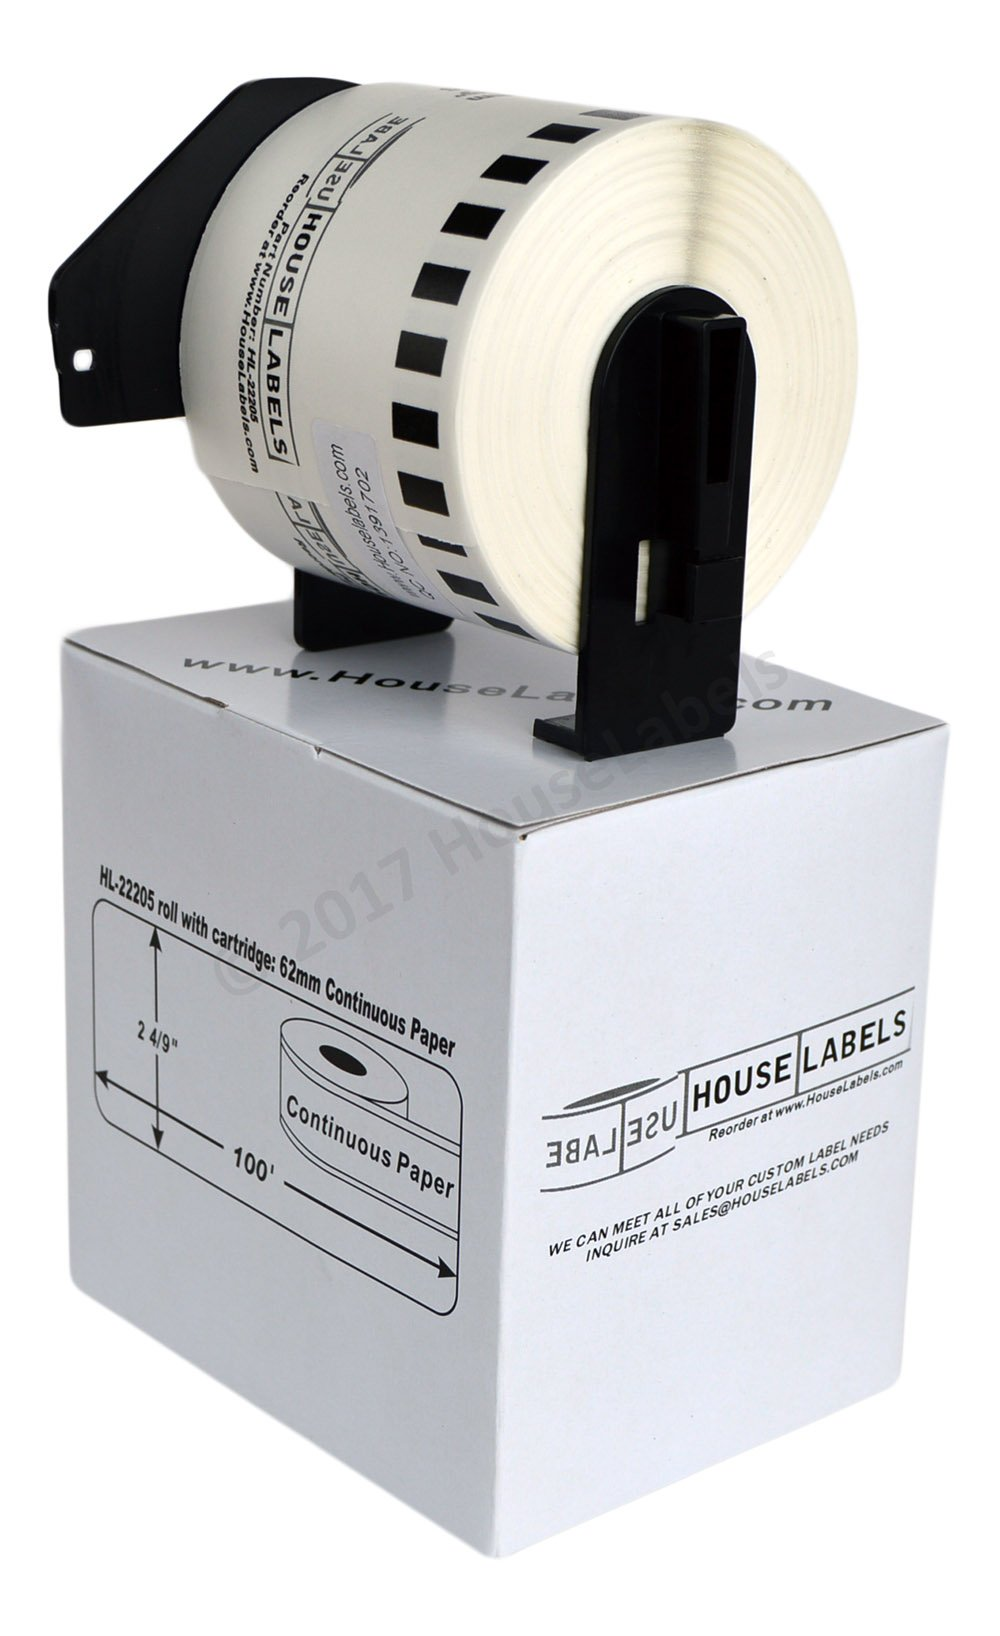 6 Rolls; BROTHER-Compatible DK-2205 Continuous Paper Labels With PERMANENT black cartridges (2-4/9'' x 100'; 62mm 30.48m) -- BPA Free!